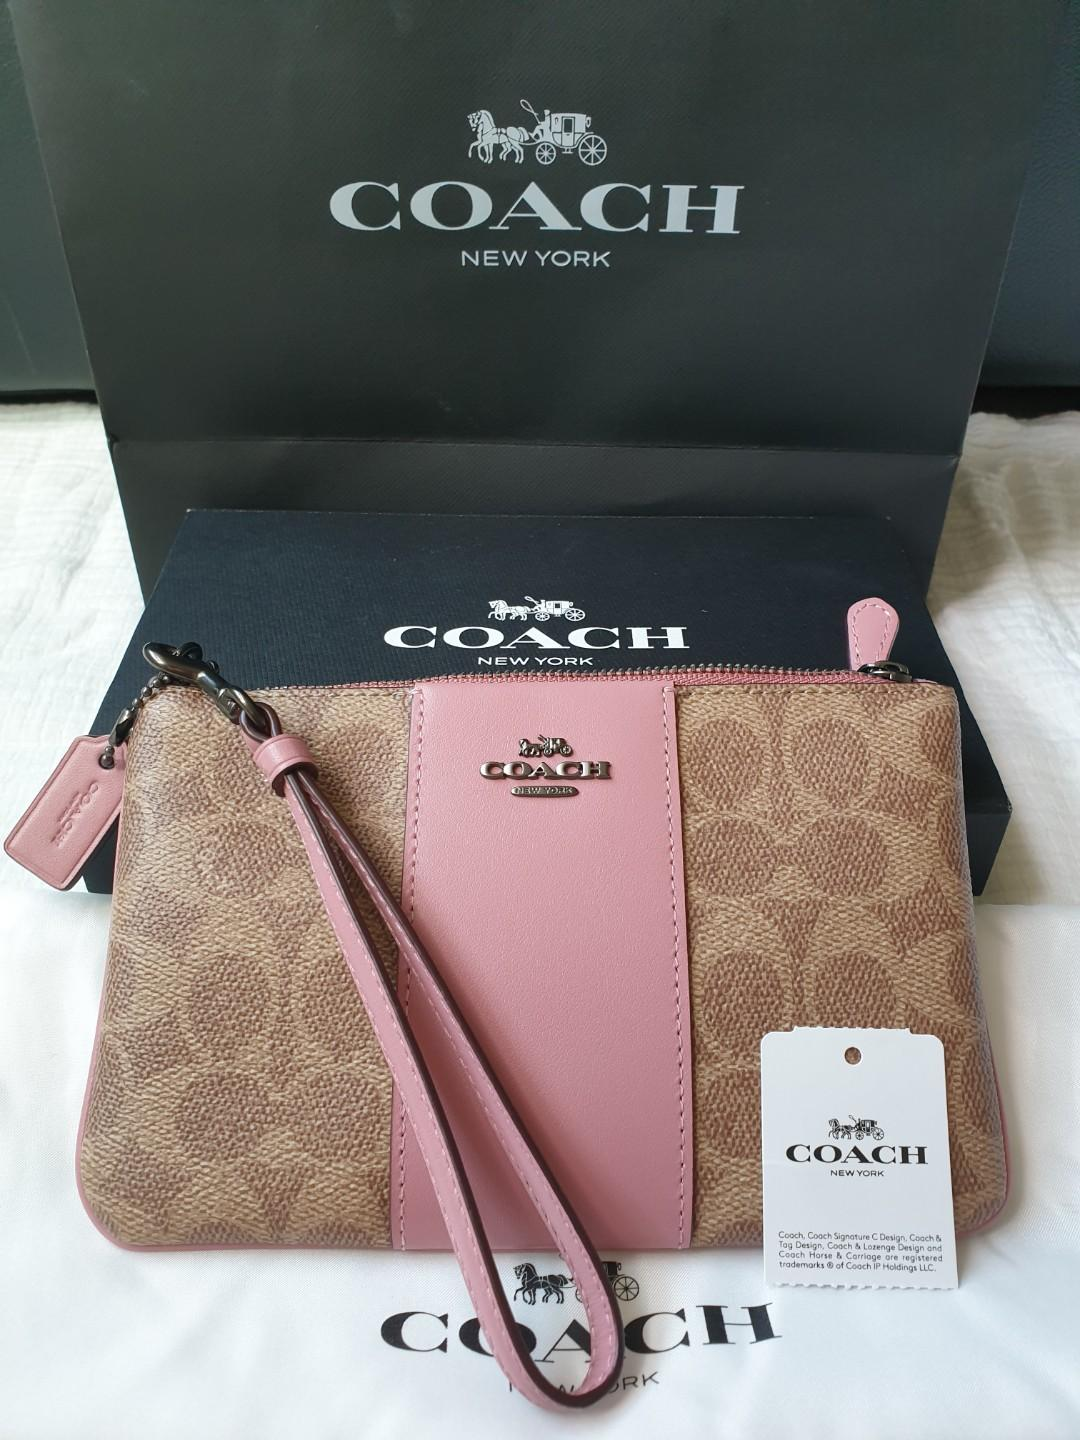 Coach Wristlet Coach Wallet Woman S Fashion Woman S Fashion Bags Coach Pink Pink Wristlet Coach Wallet Bag Women S Fashion Bags Wallets Wallets On Carousell